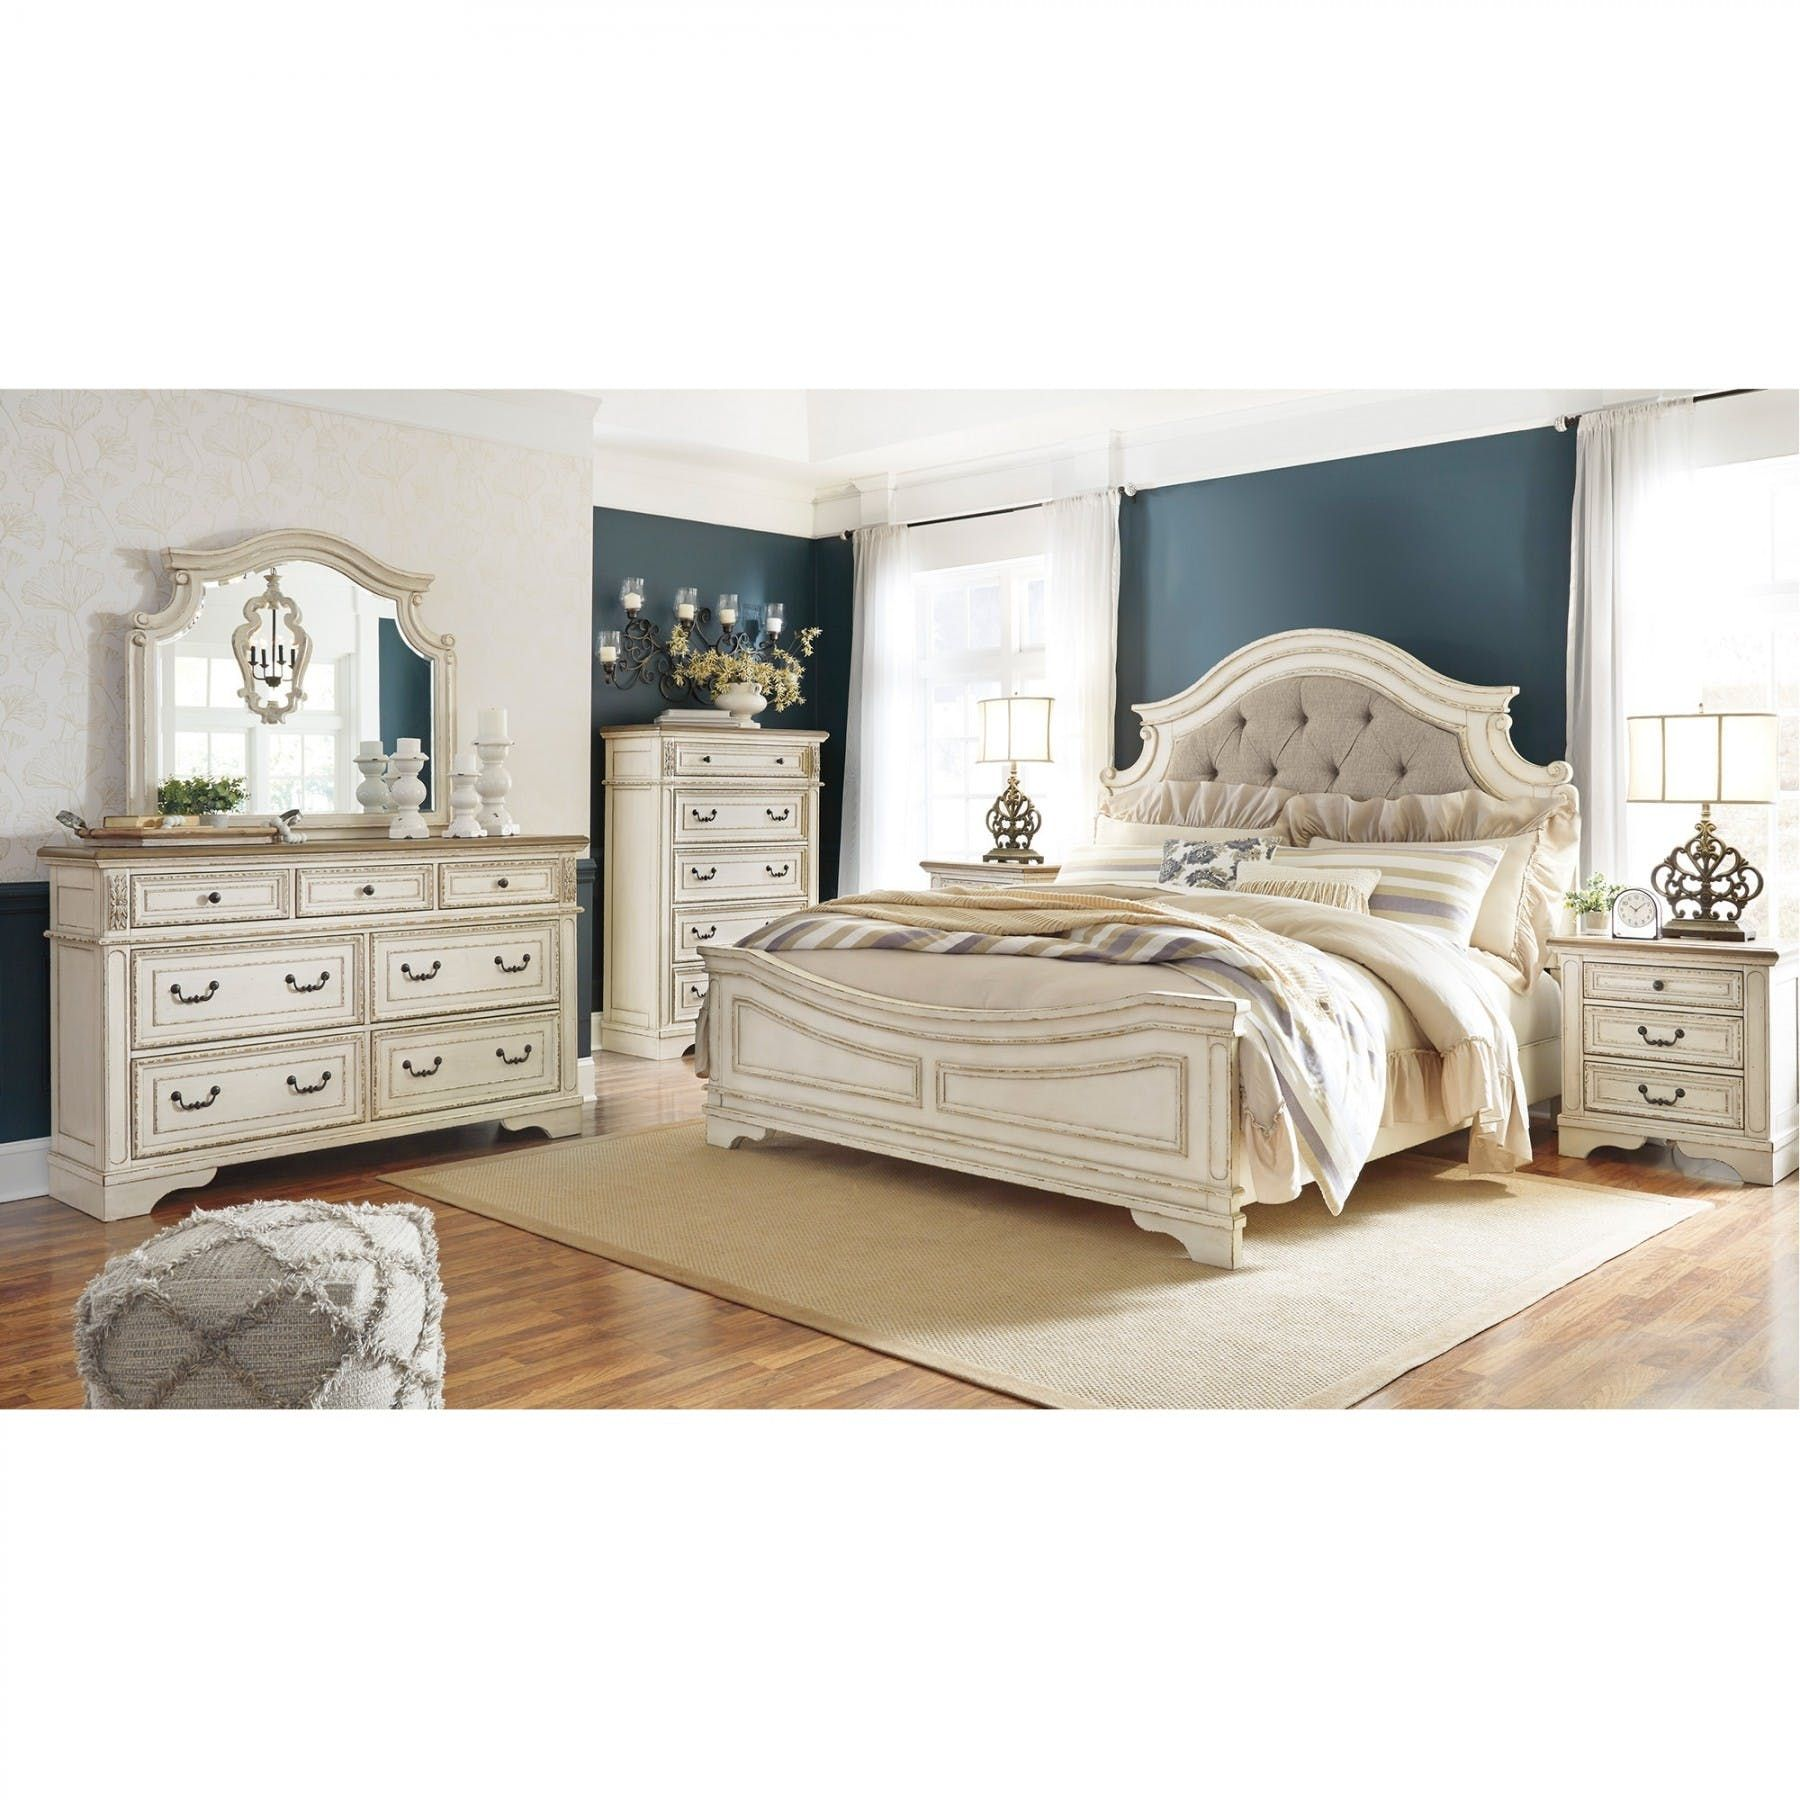 Realyn Upholstered Bed Bernie Phyl S Furniture By Ashley